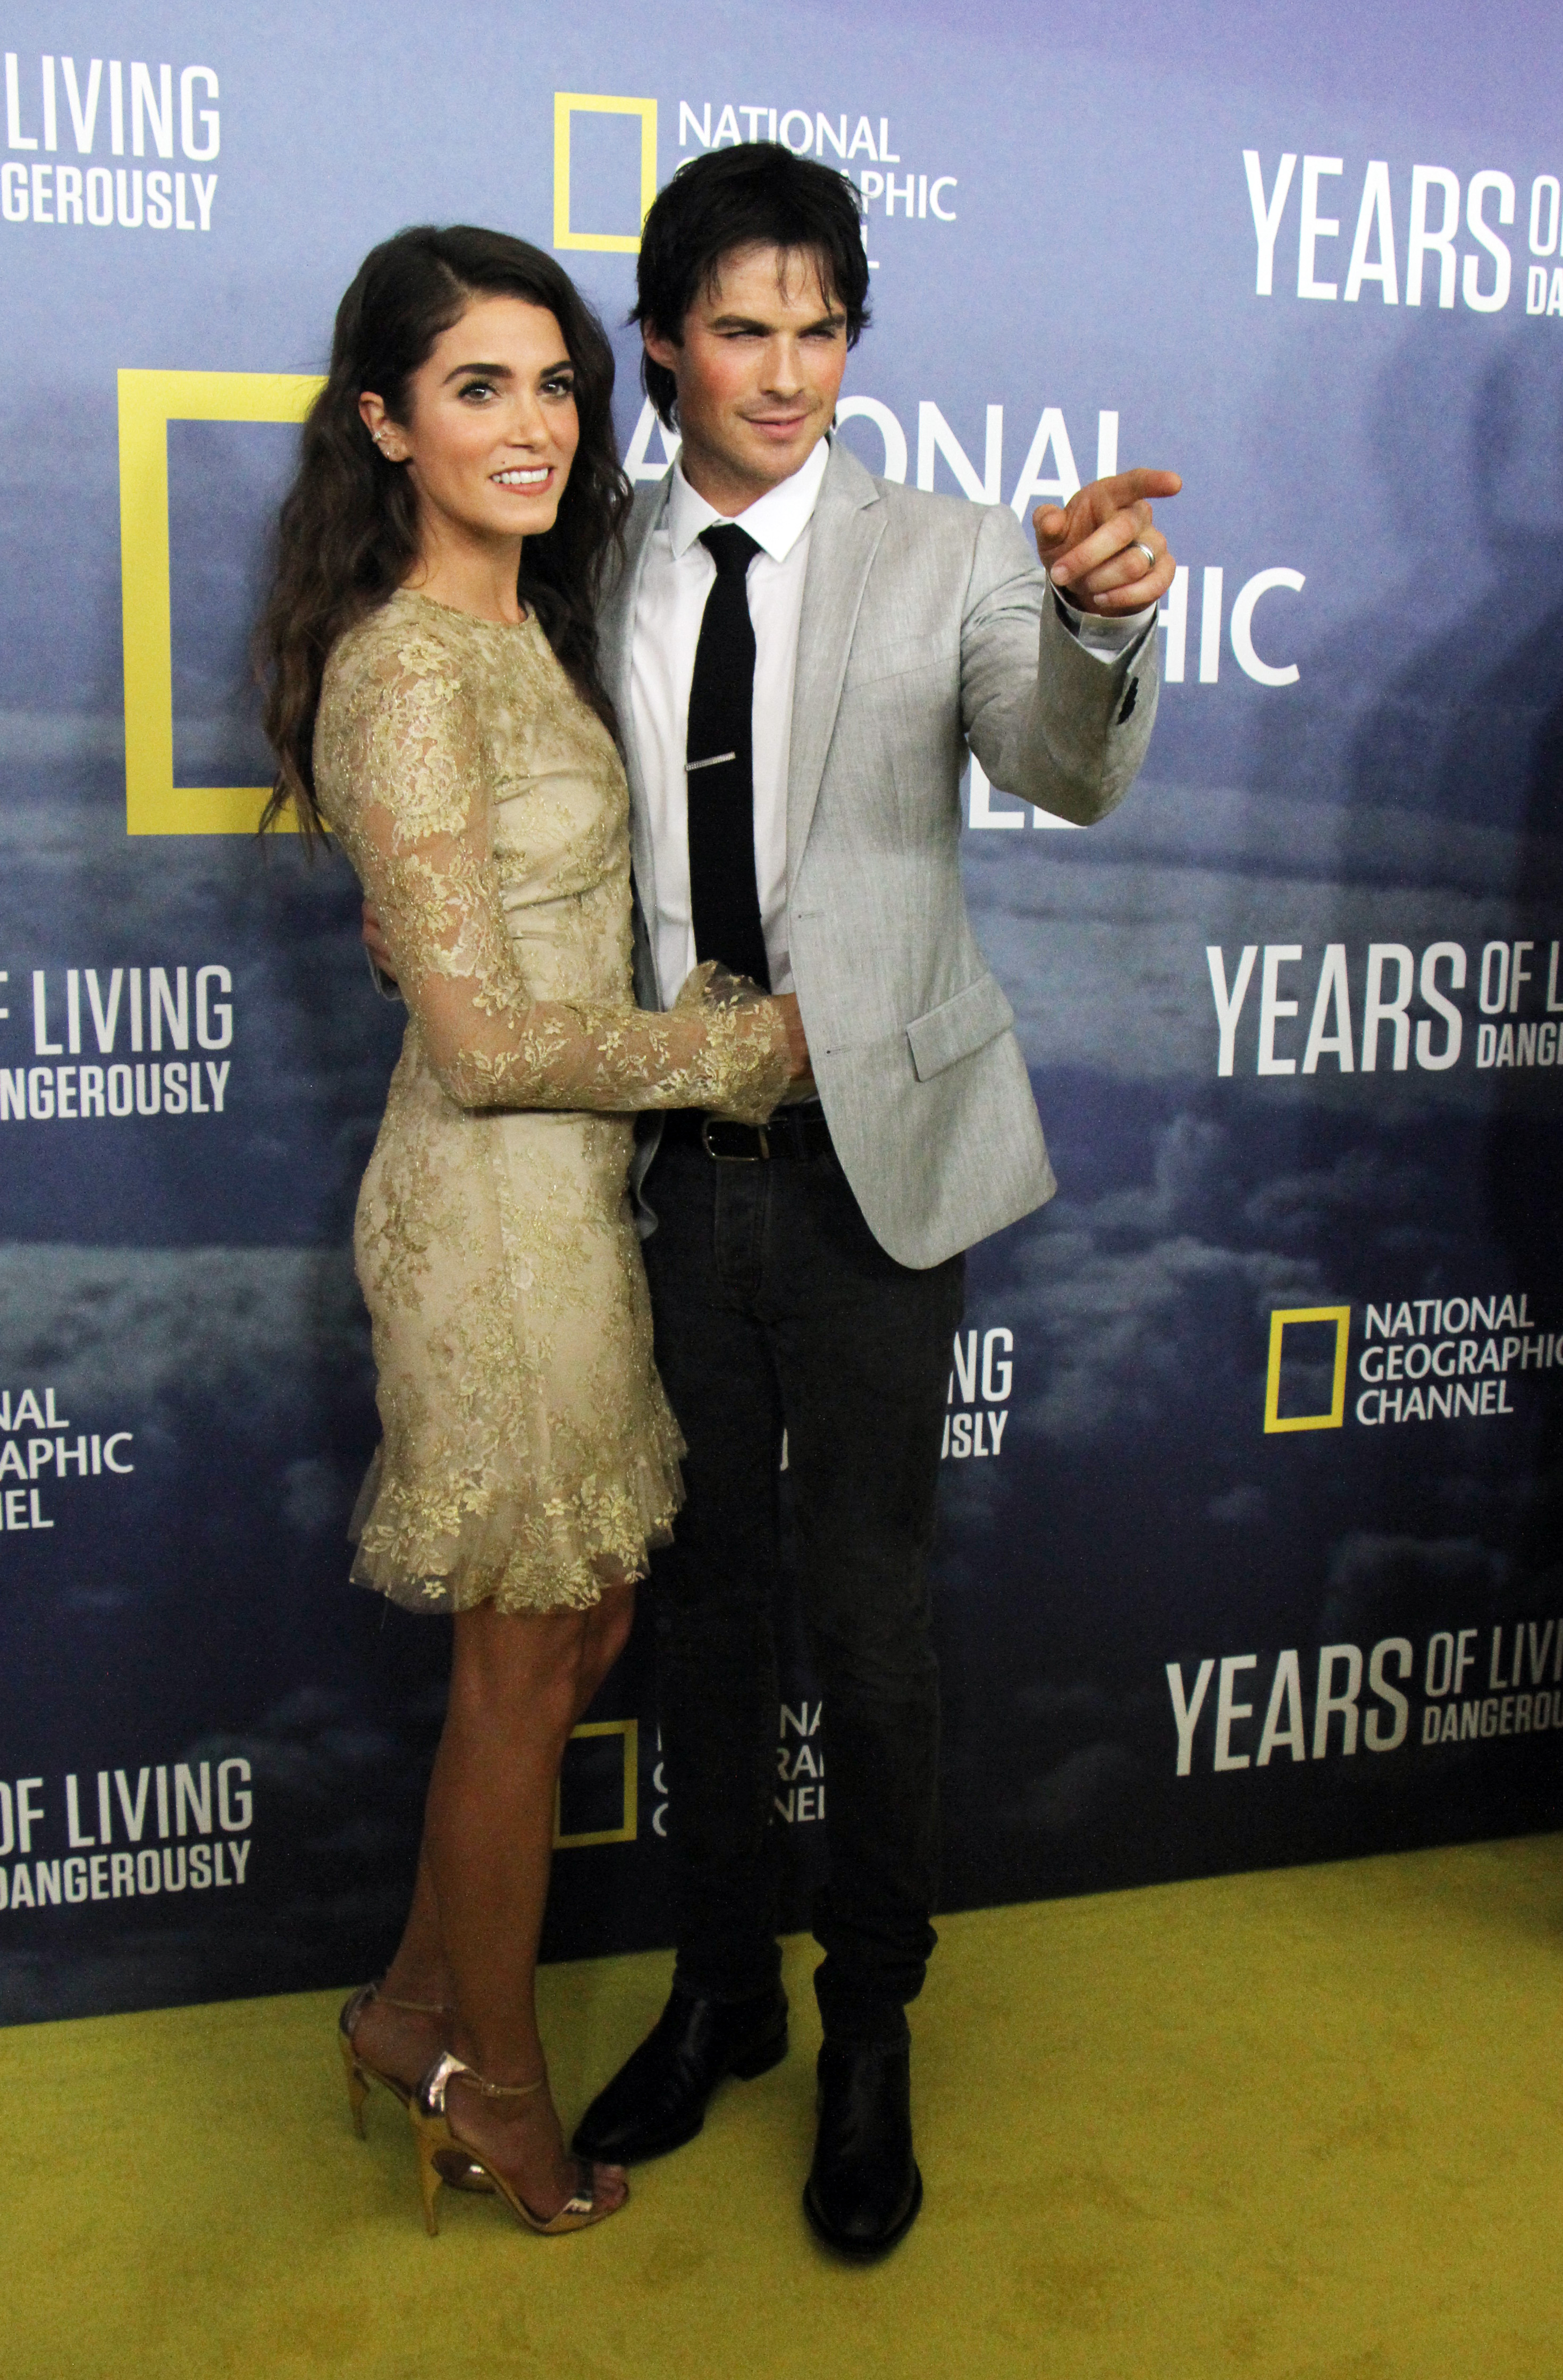 National Geographic's 'Years Of Living Dangerously' Season 2 World Premiere at American Museum of Natural History                                    Featuring: Ian Somerhalder, Nikki Reed                  Where: New York City, New York, United States                  When: 24 Sep 2016                  Credit: RWong/WENN.com